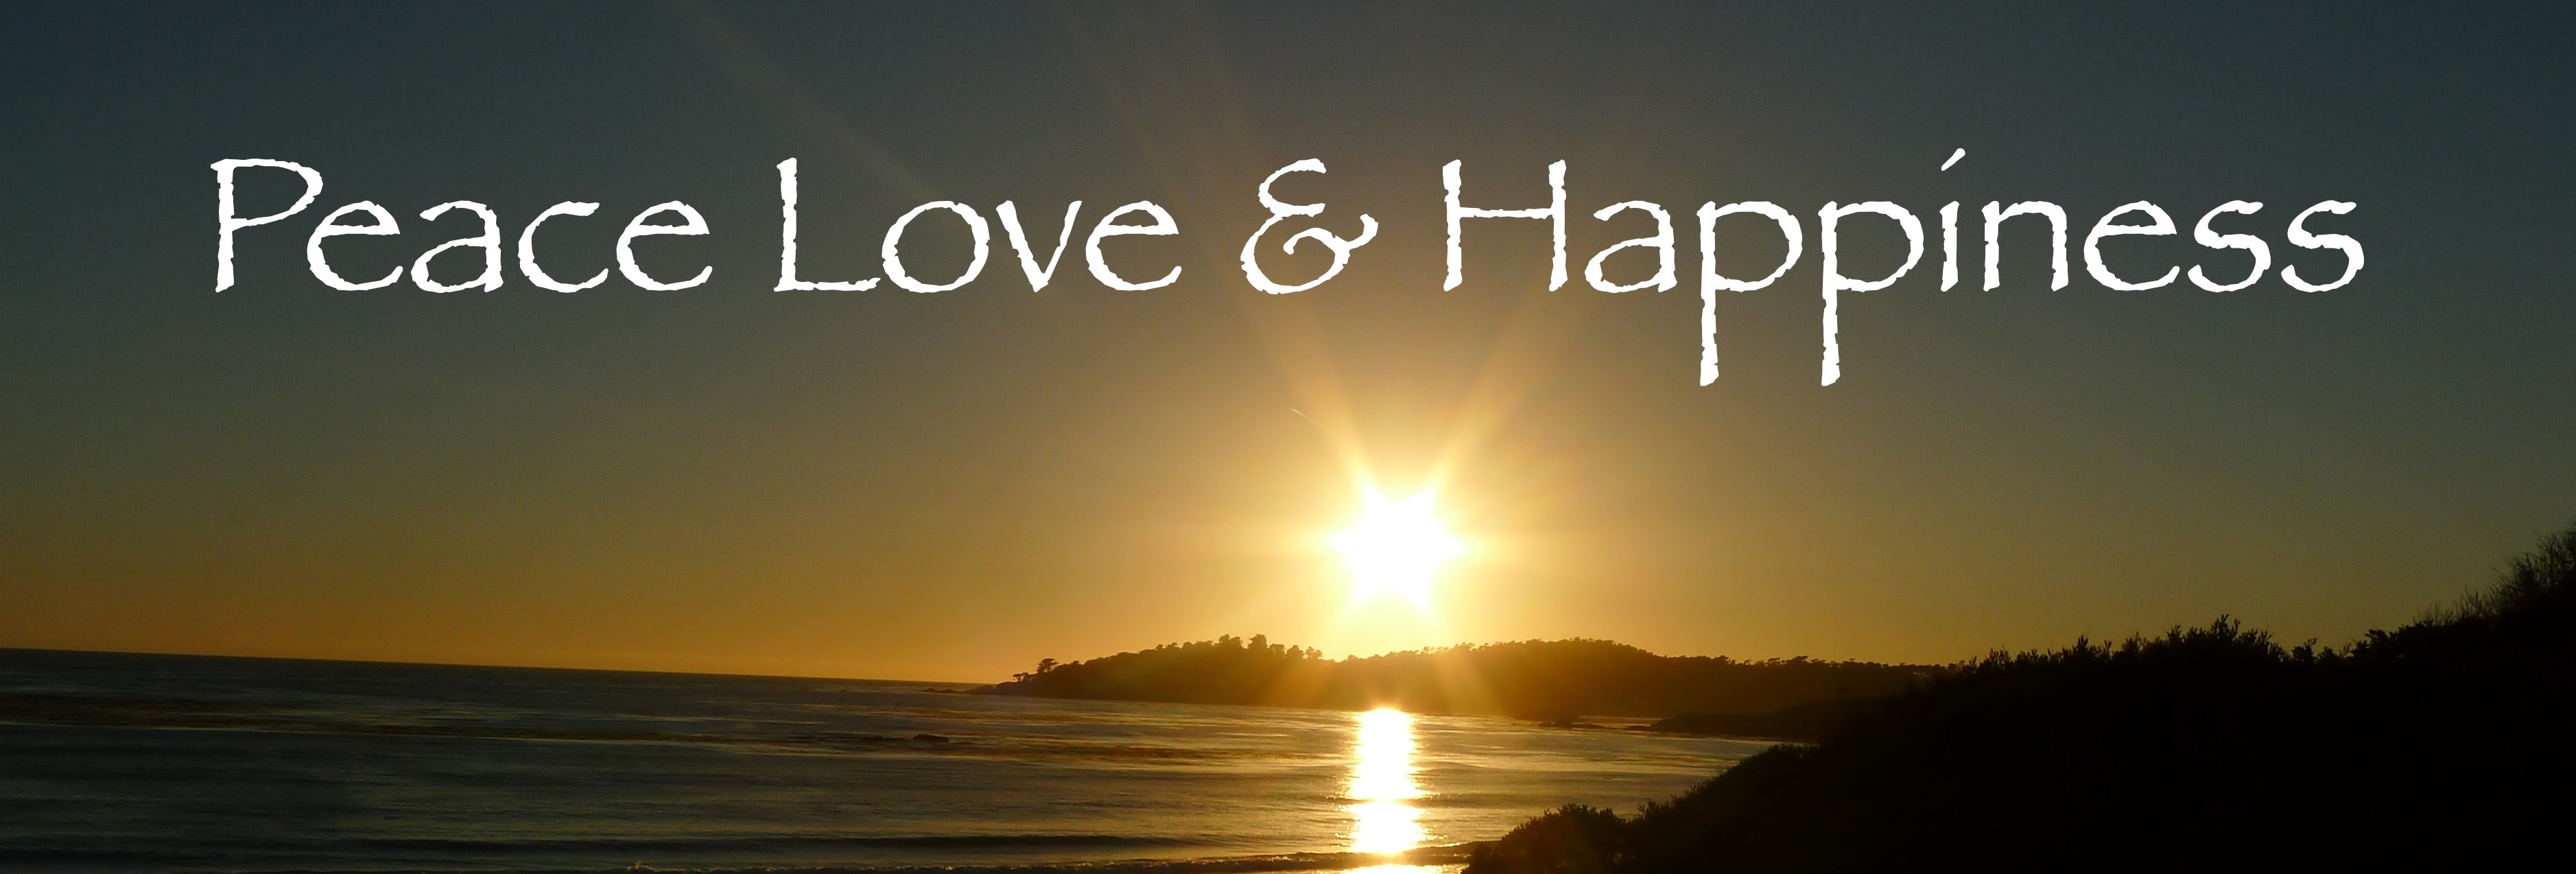 Quotes About Love And Happiness: Quotes About Peace Happiness And Love (43 Quotes